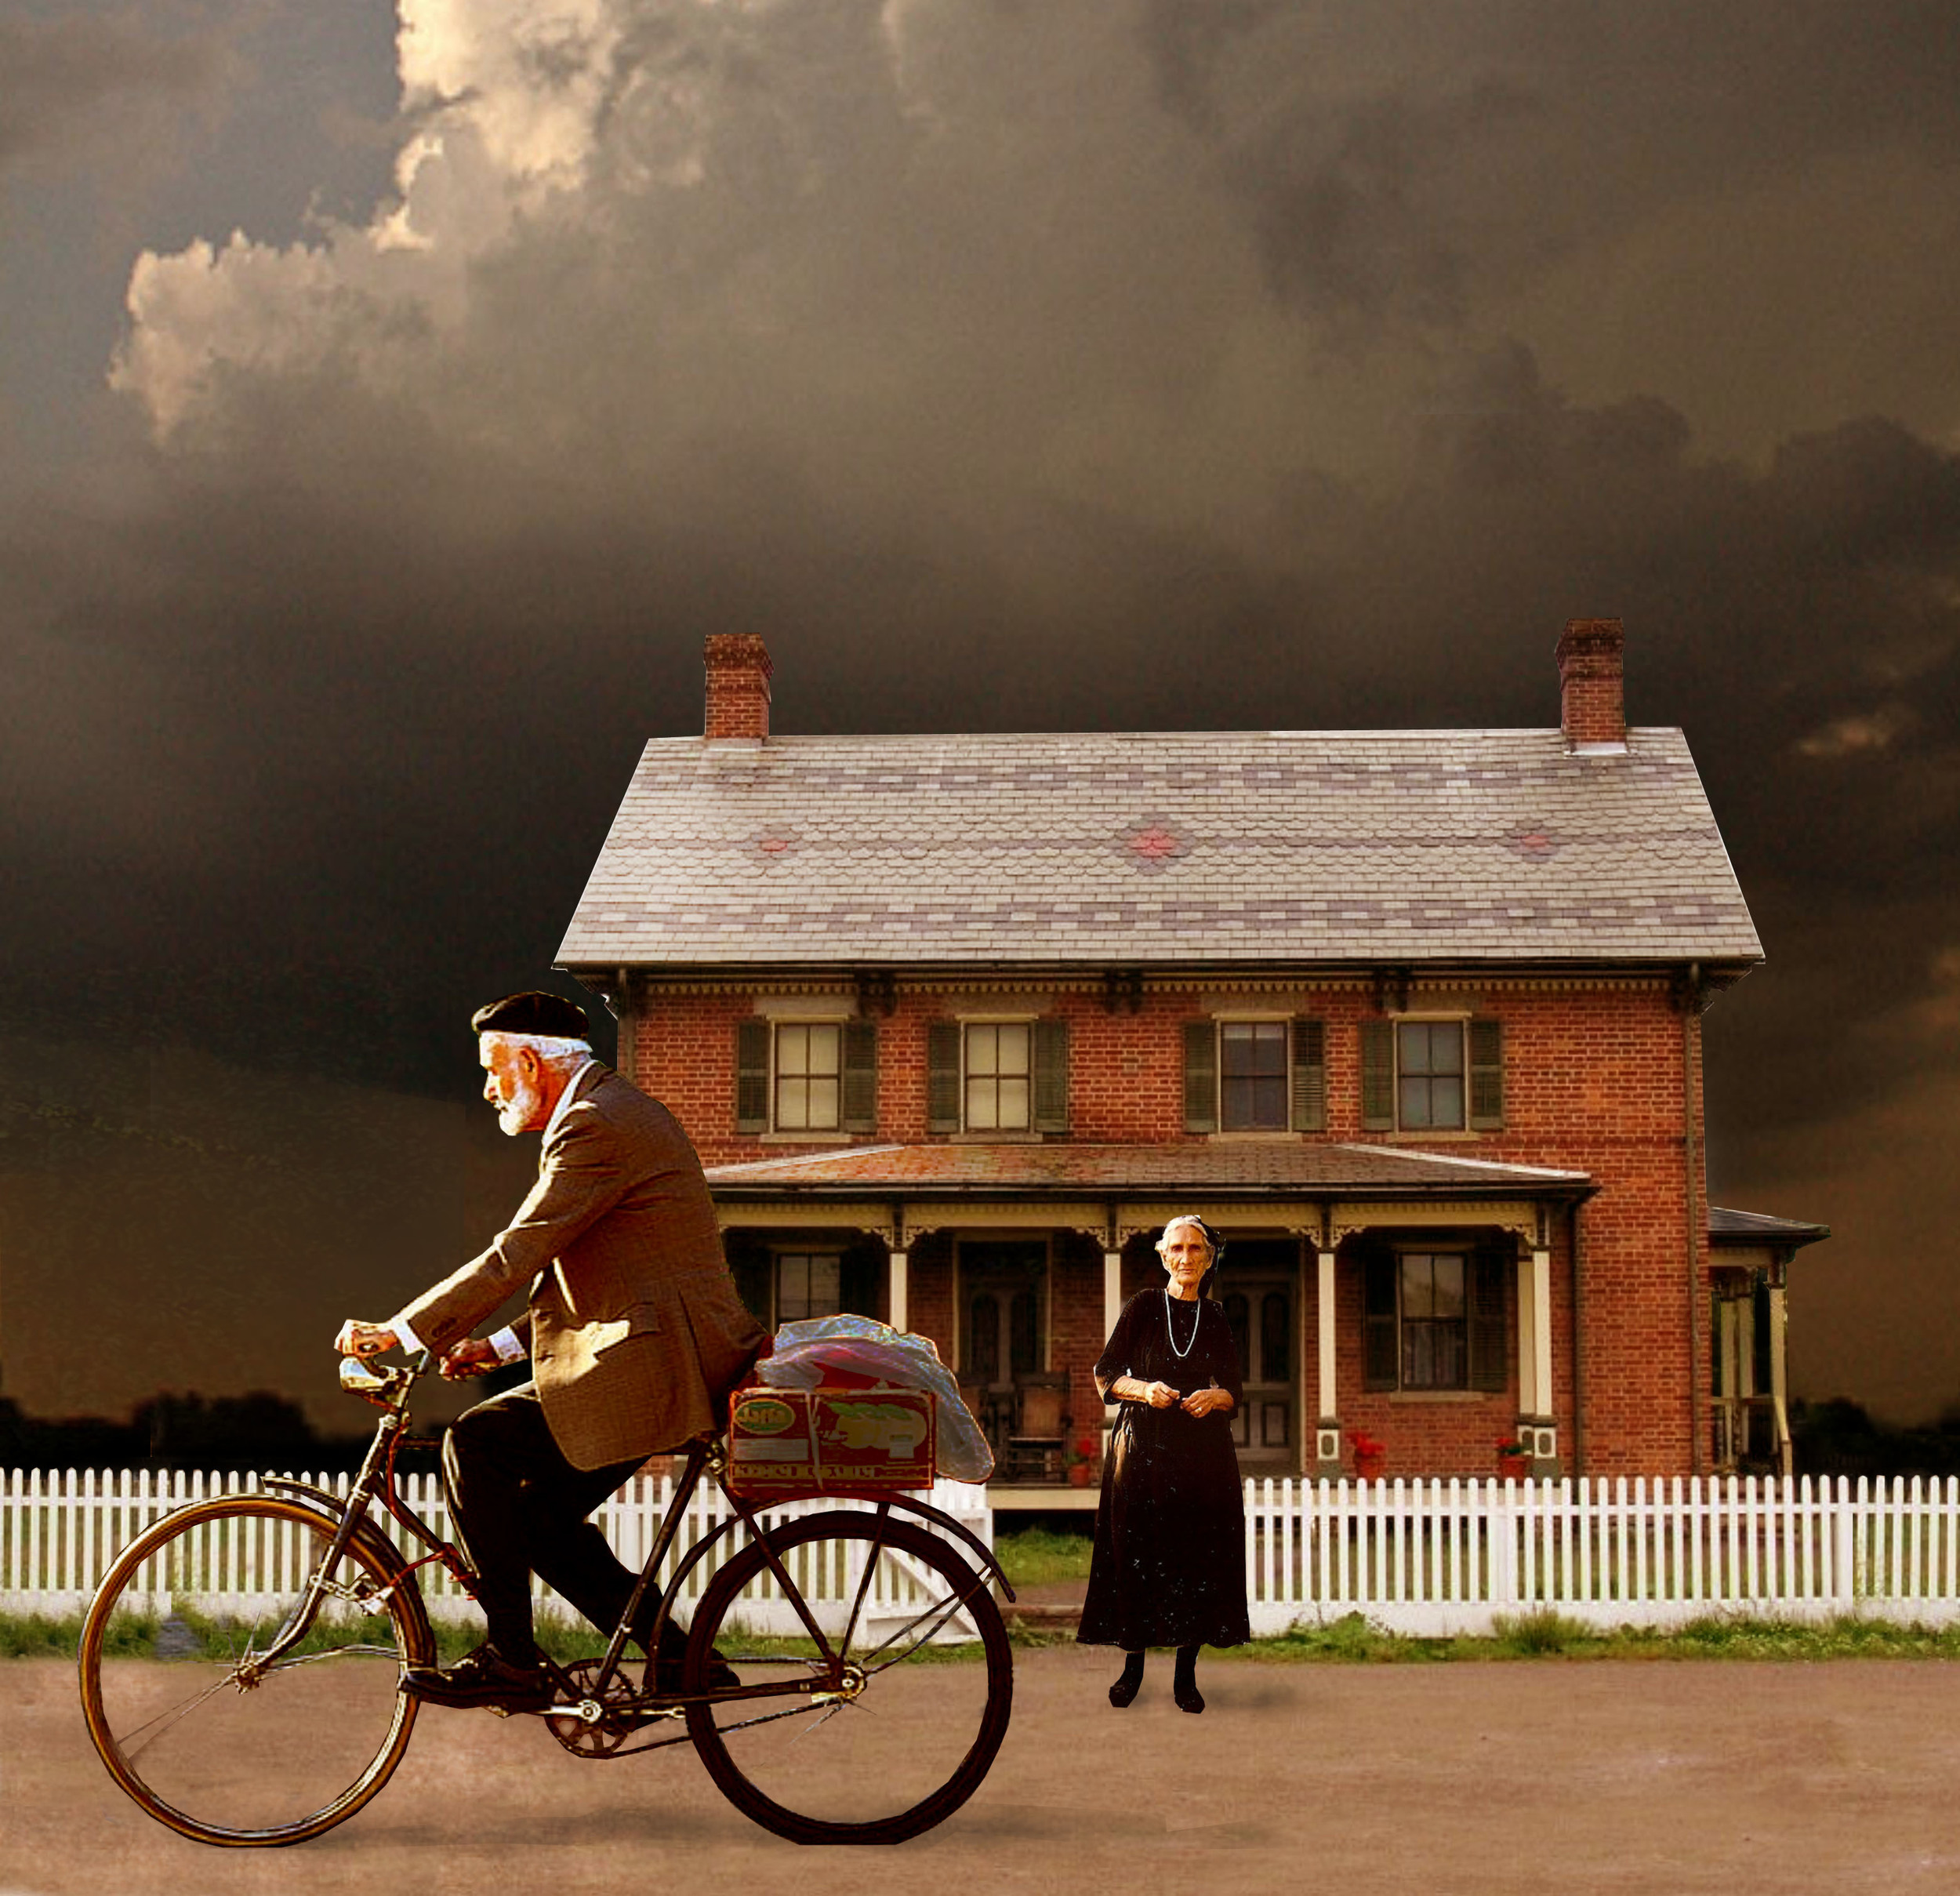 My illustration: Henry leaves on his bike for work as Irene watches.